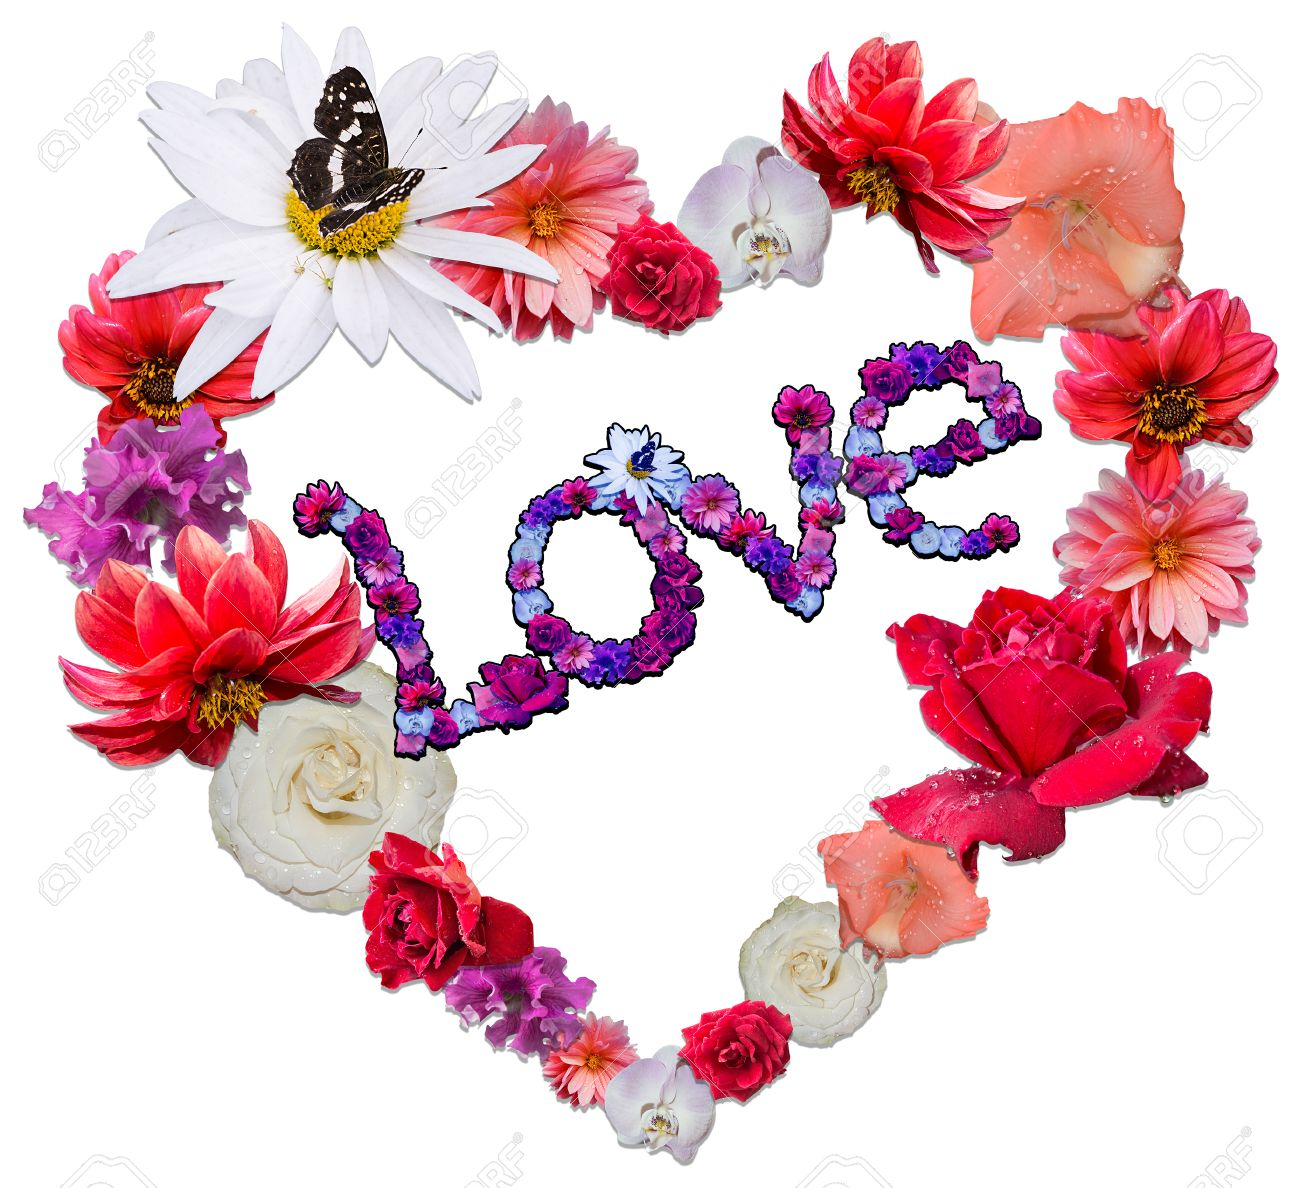 Beautiful Heart With Legend Made Of Different Flowers As A Symbol